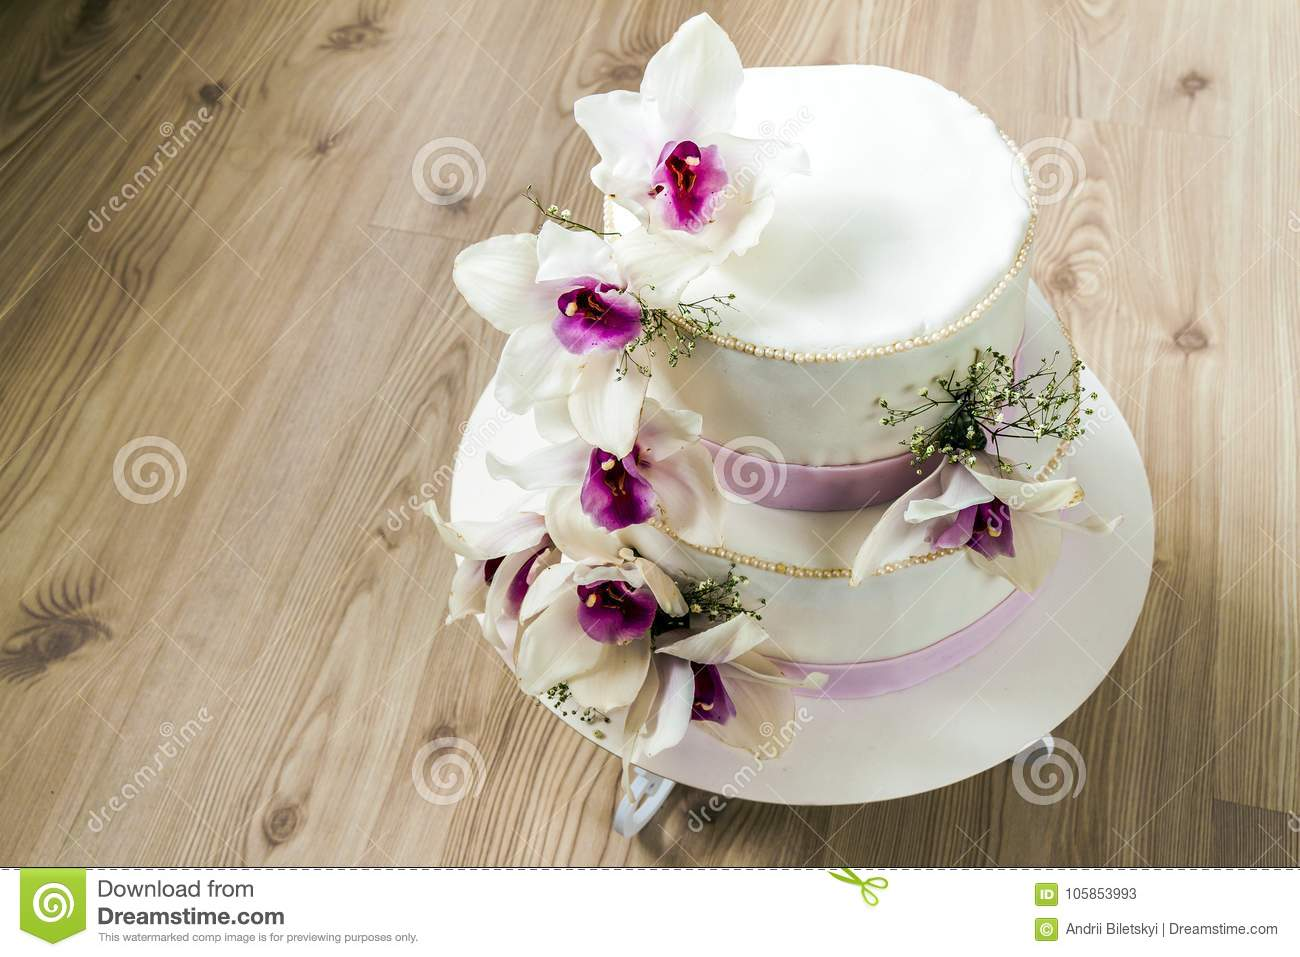 Beautiful Wedding Cake With Flowers Close Up Of Cake With Blurr